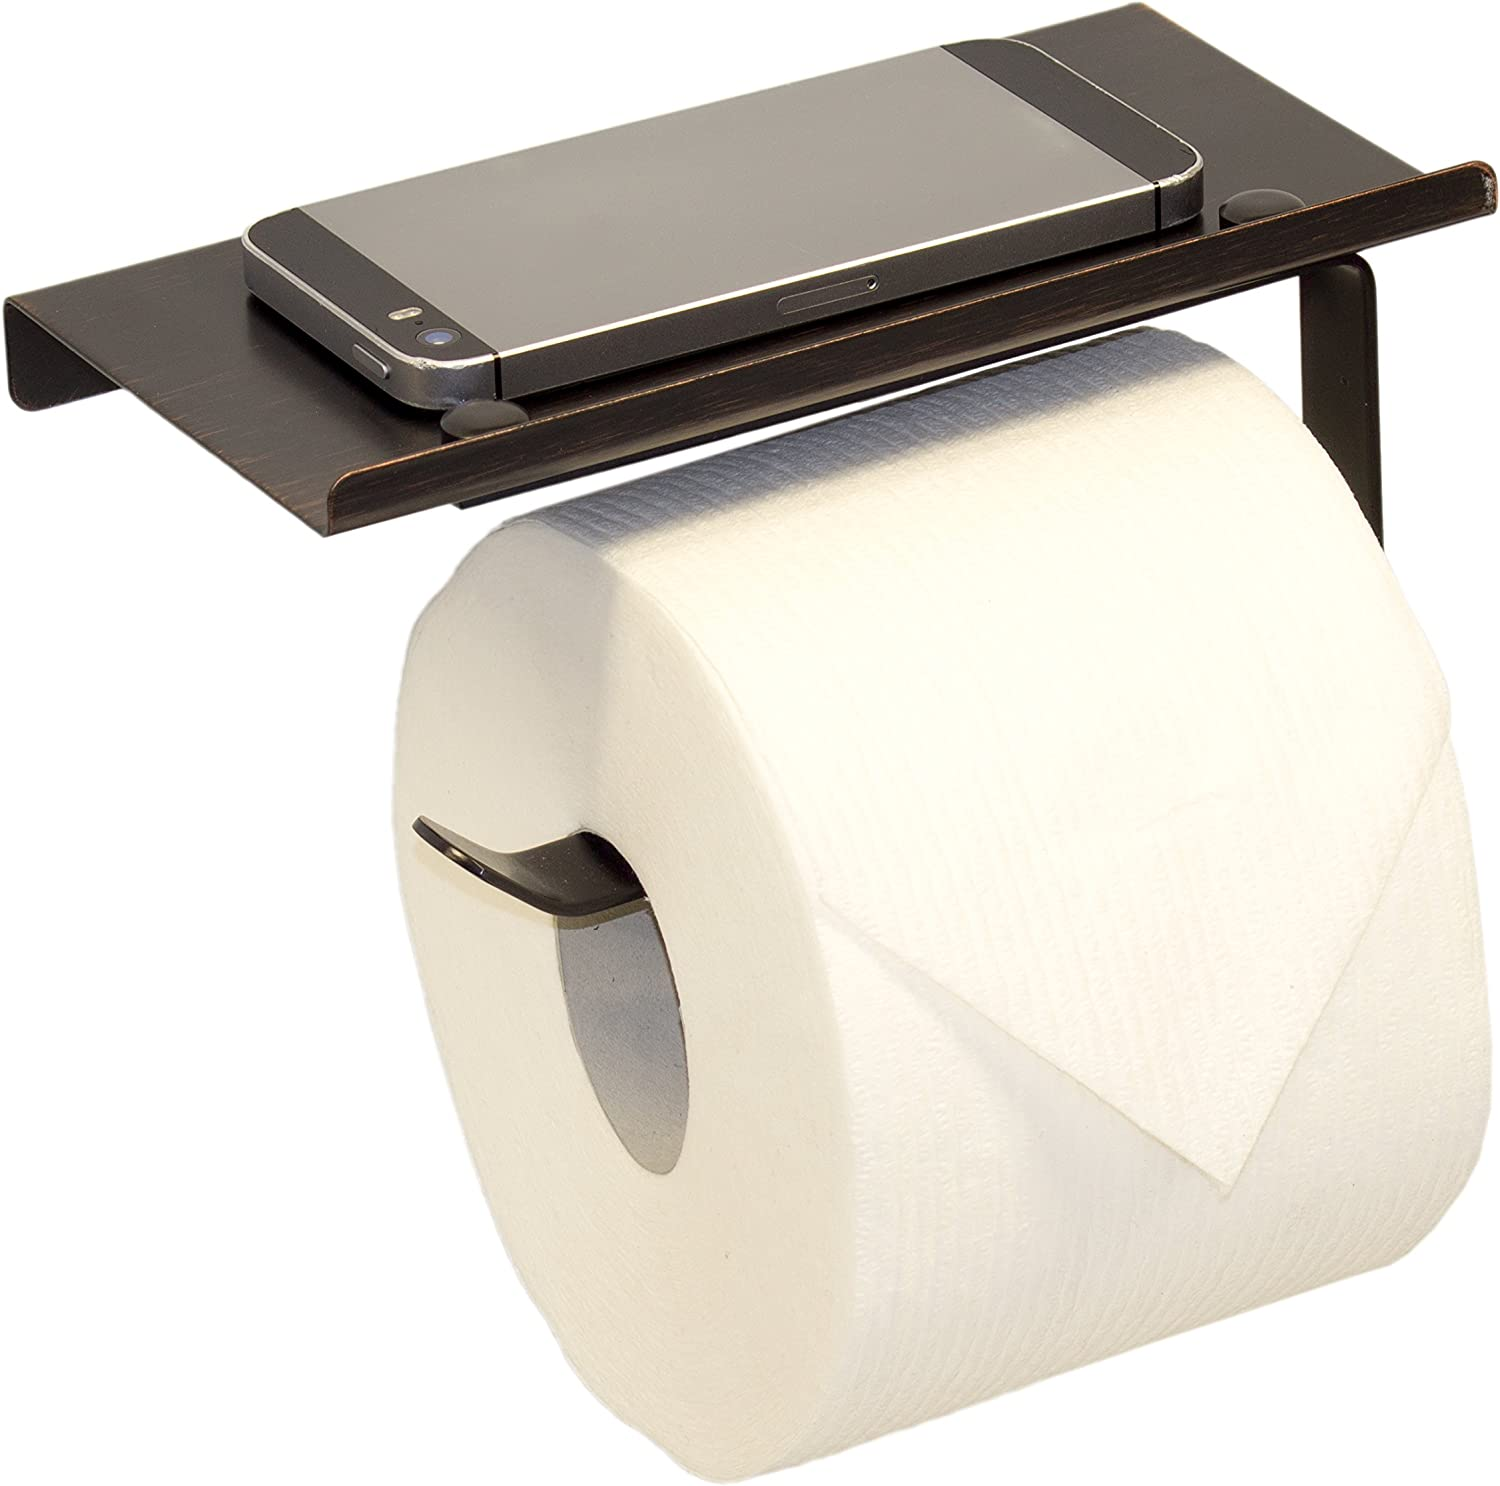 Long Beach Mall Neater Nest Reversible Toilet Paper Mod with Phone Shelf Holder discount